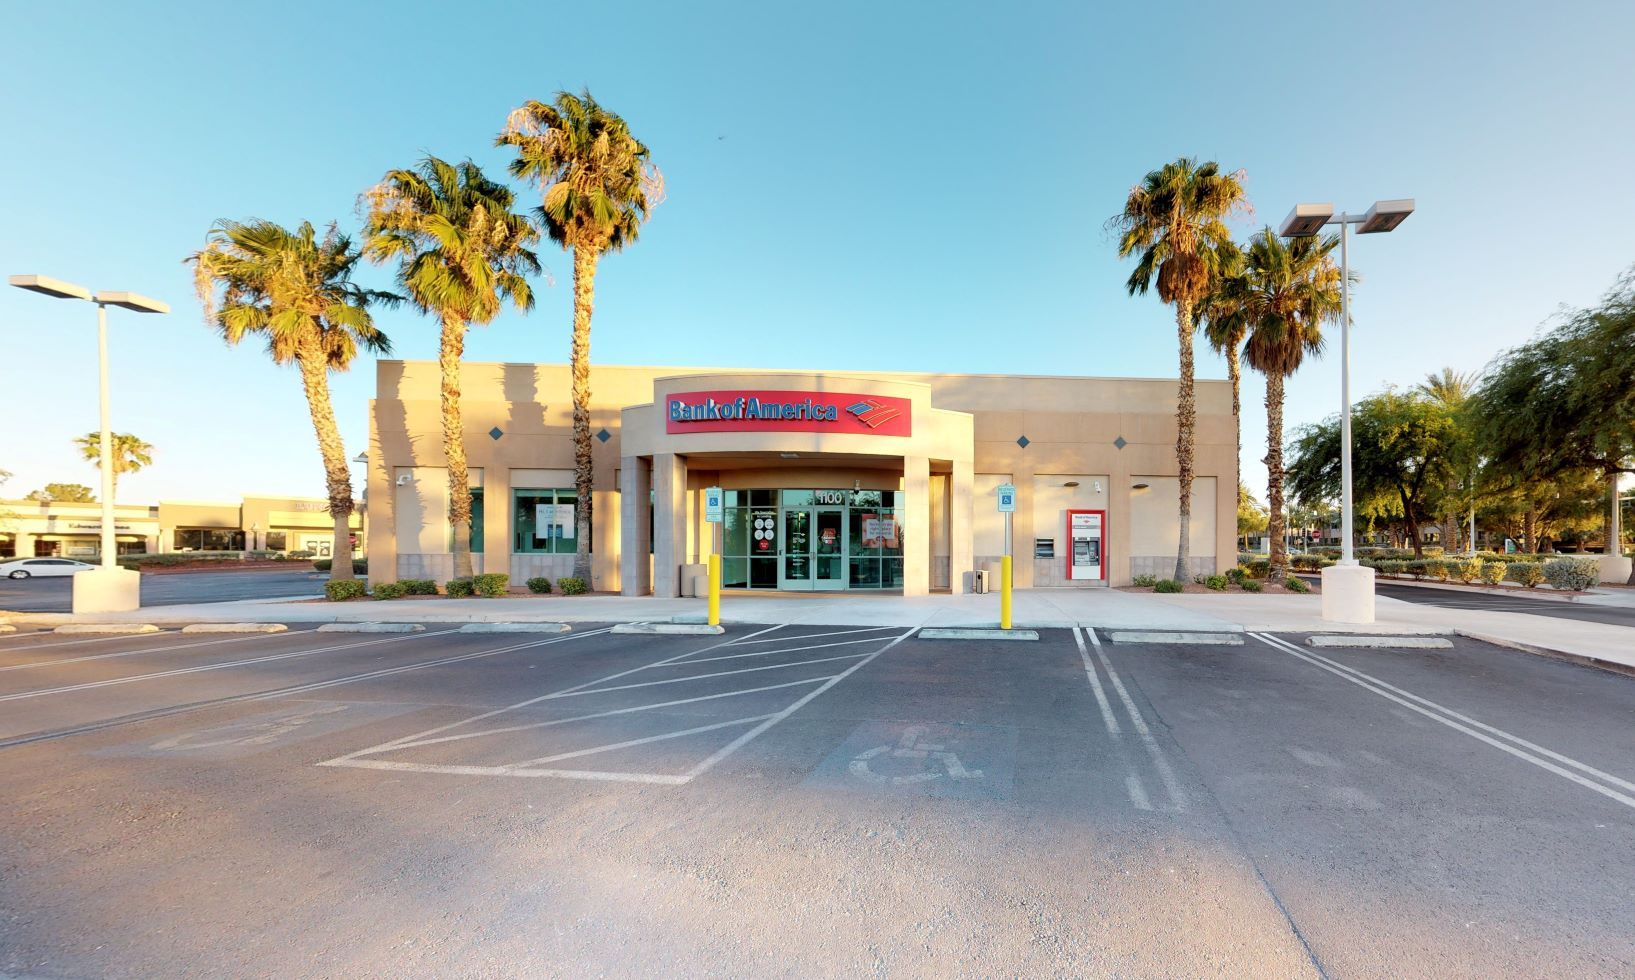 Bank of America financial center with drive-thru ATM | 1100 N Green Valley Pkwy, Henderson, NV 89074